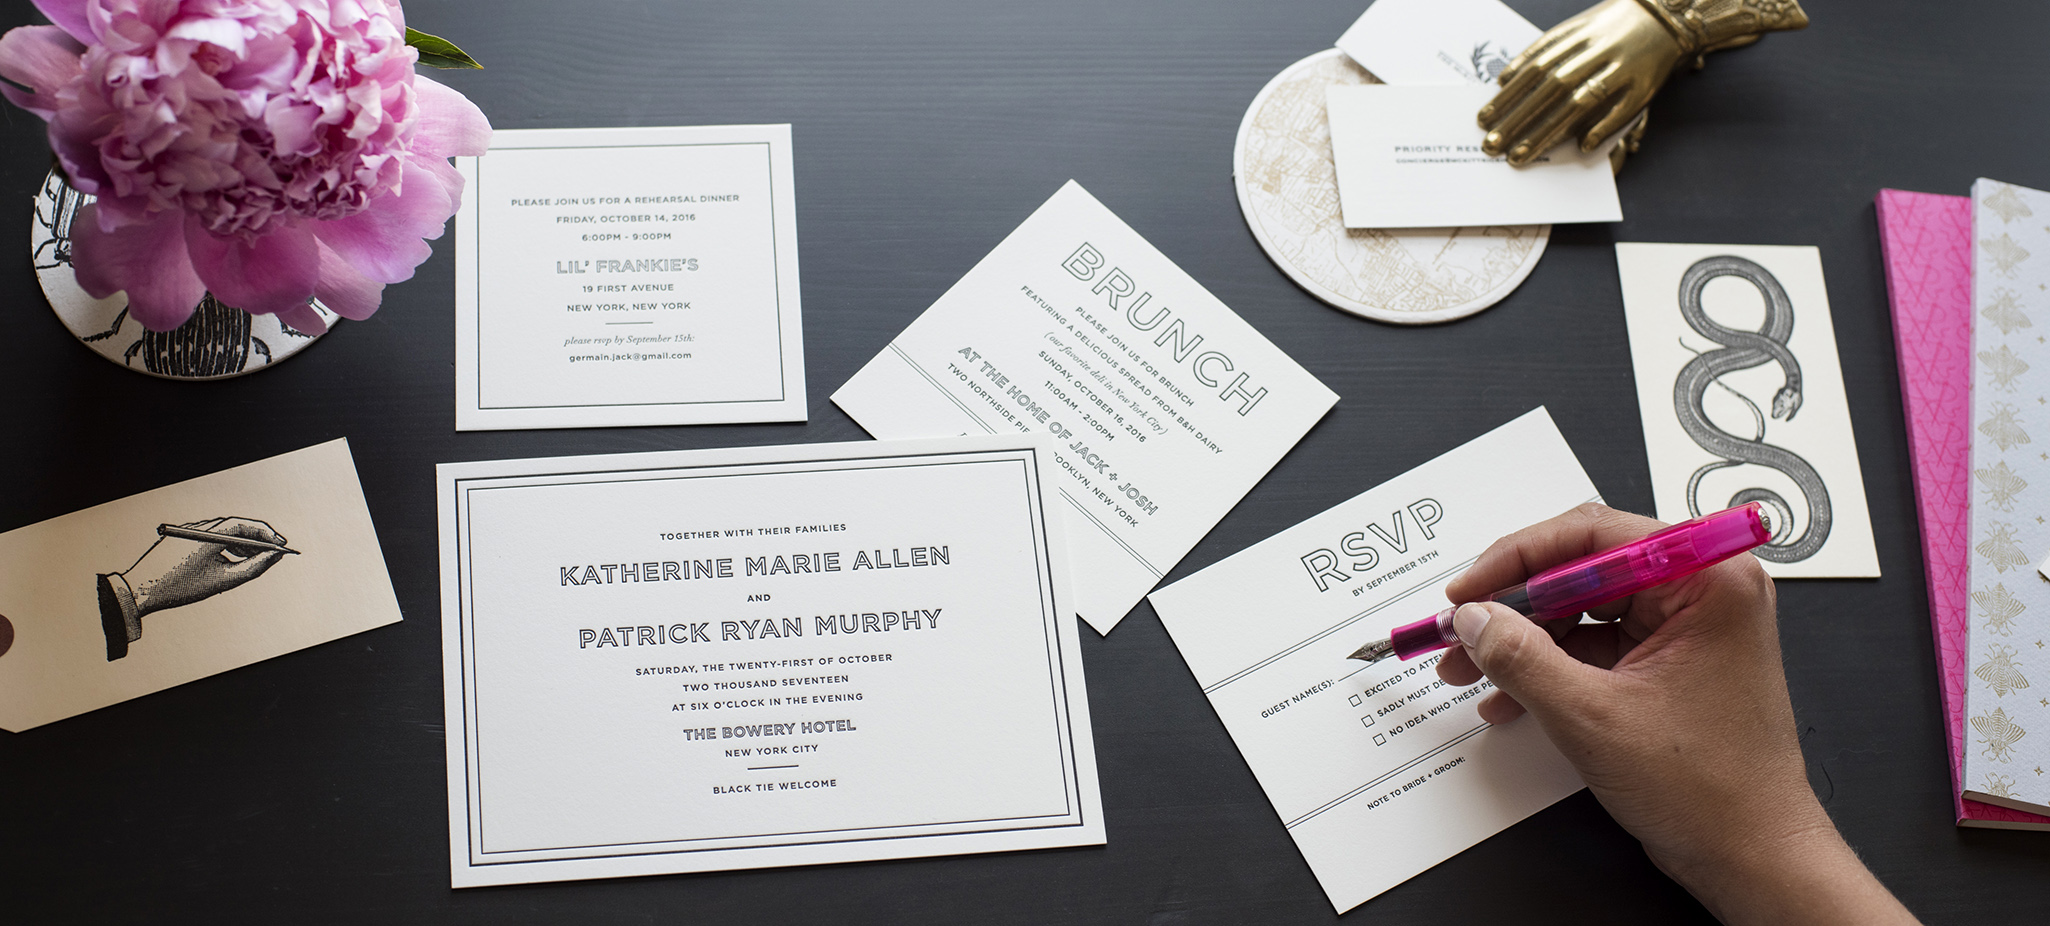 Welcome  to sesame letterpress printers of bespoke fine stationery  Est. 1999